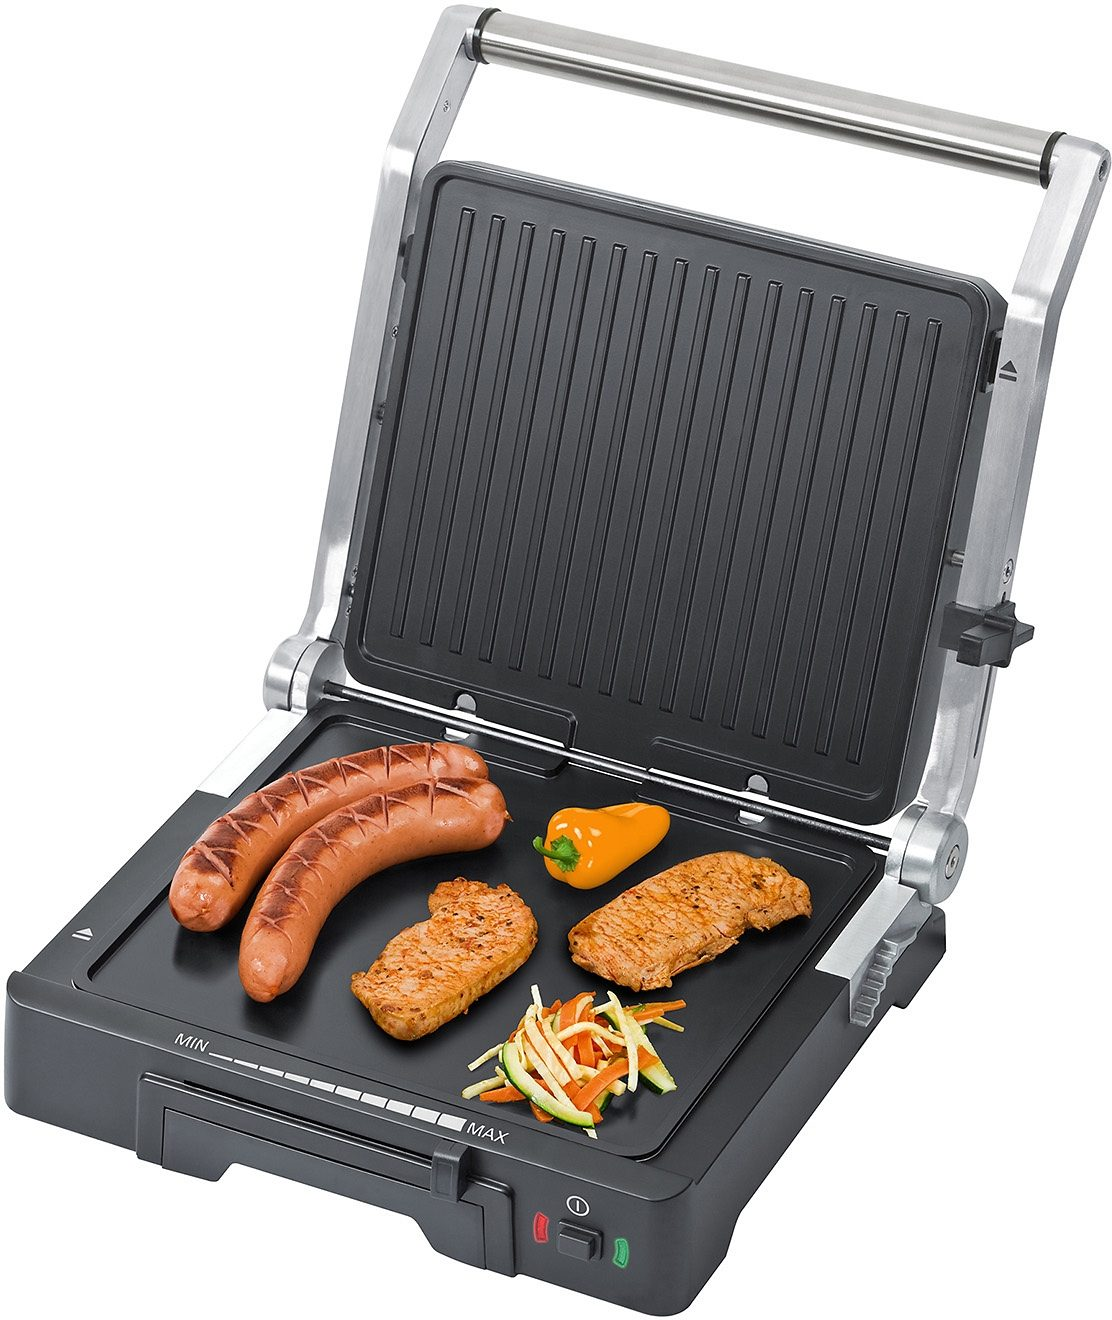 Steba Kontaktgrill FG 70, 1800 Watt, mit Low-Fat-Funktion